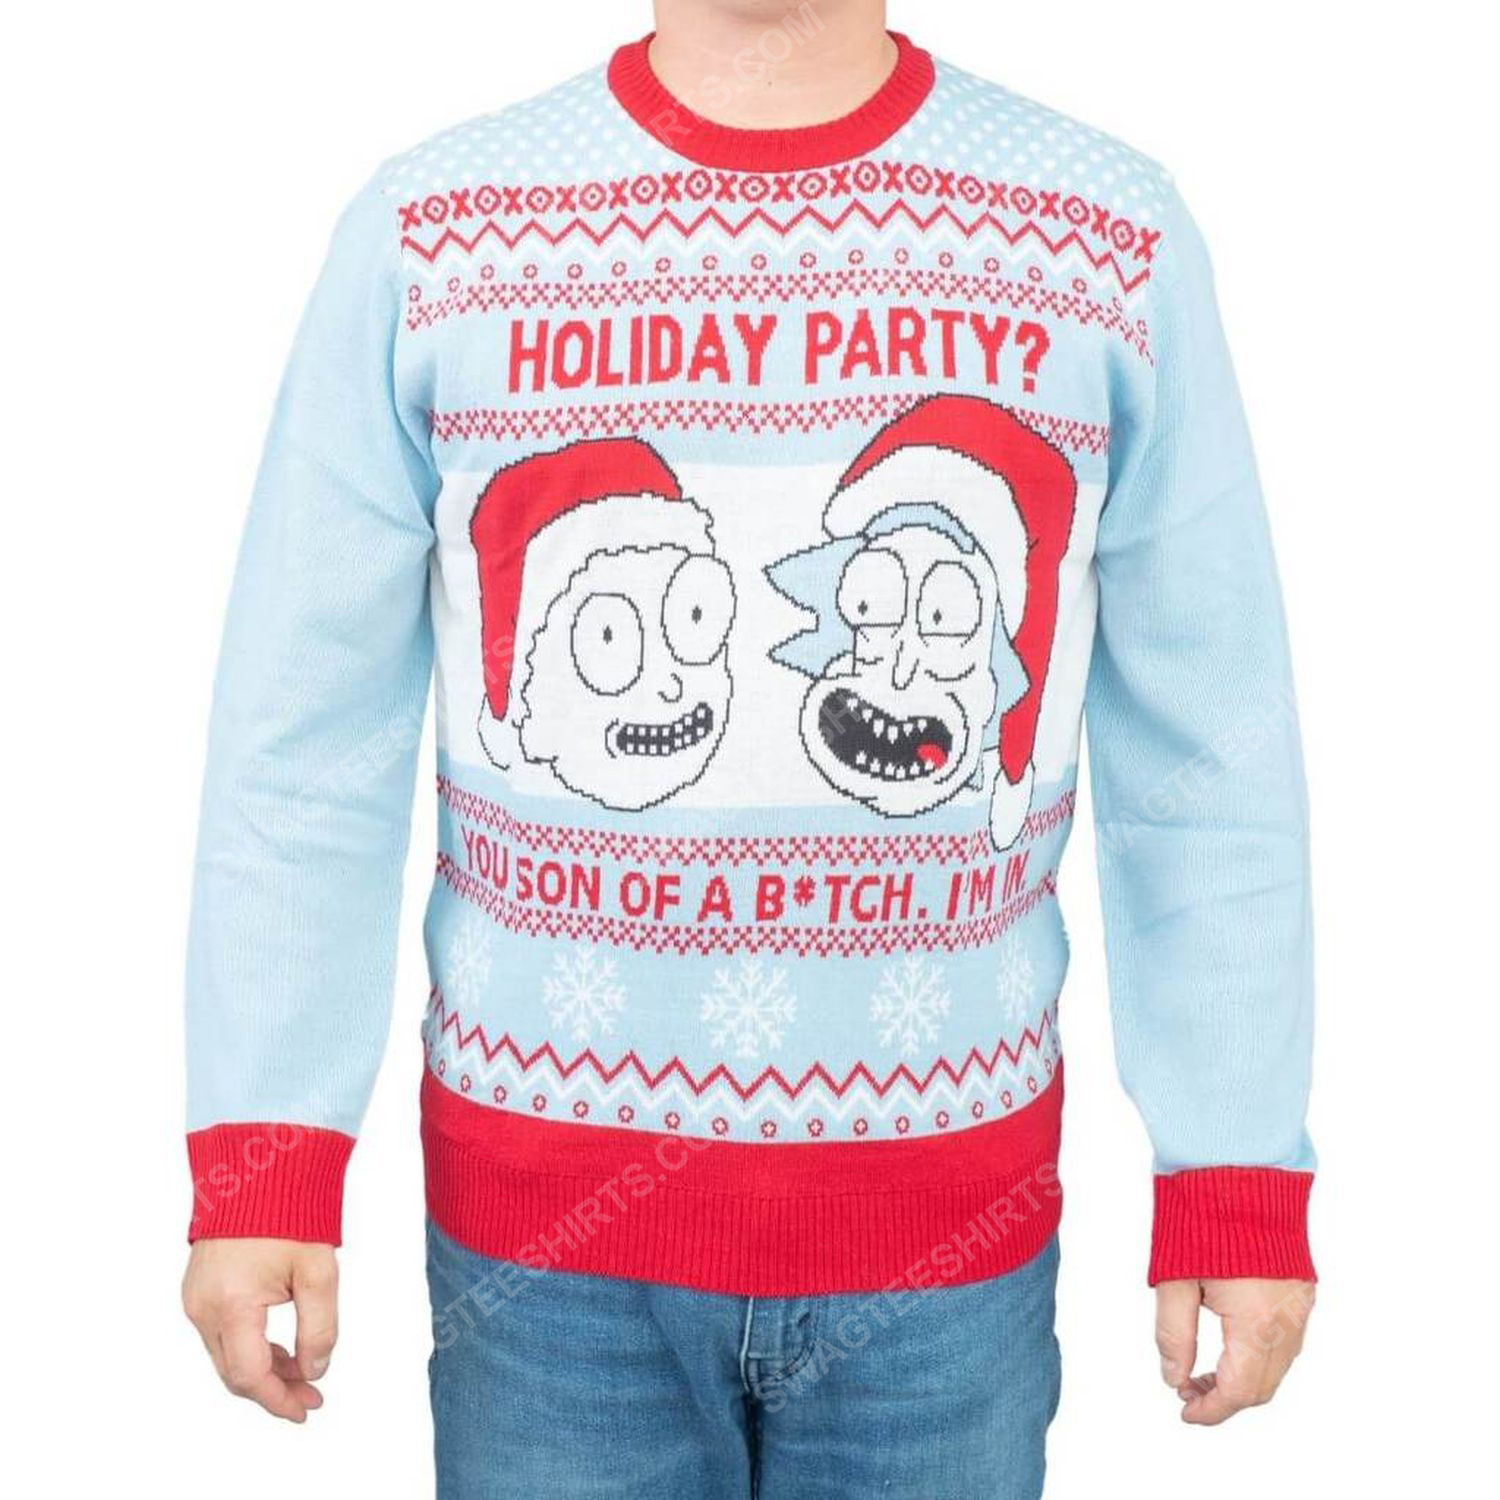 Rick and morty holiday party you son of a bitch i'm in full print ugly christmas sweater 2